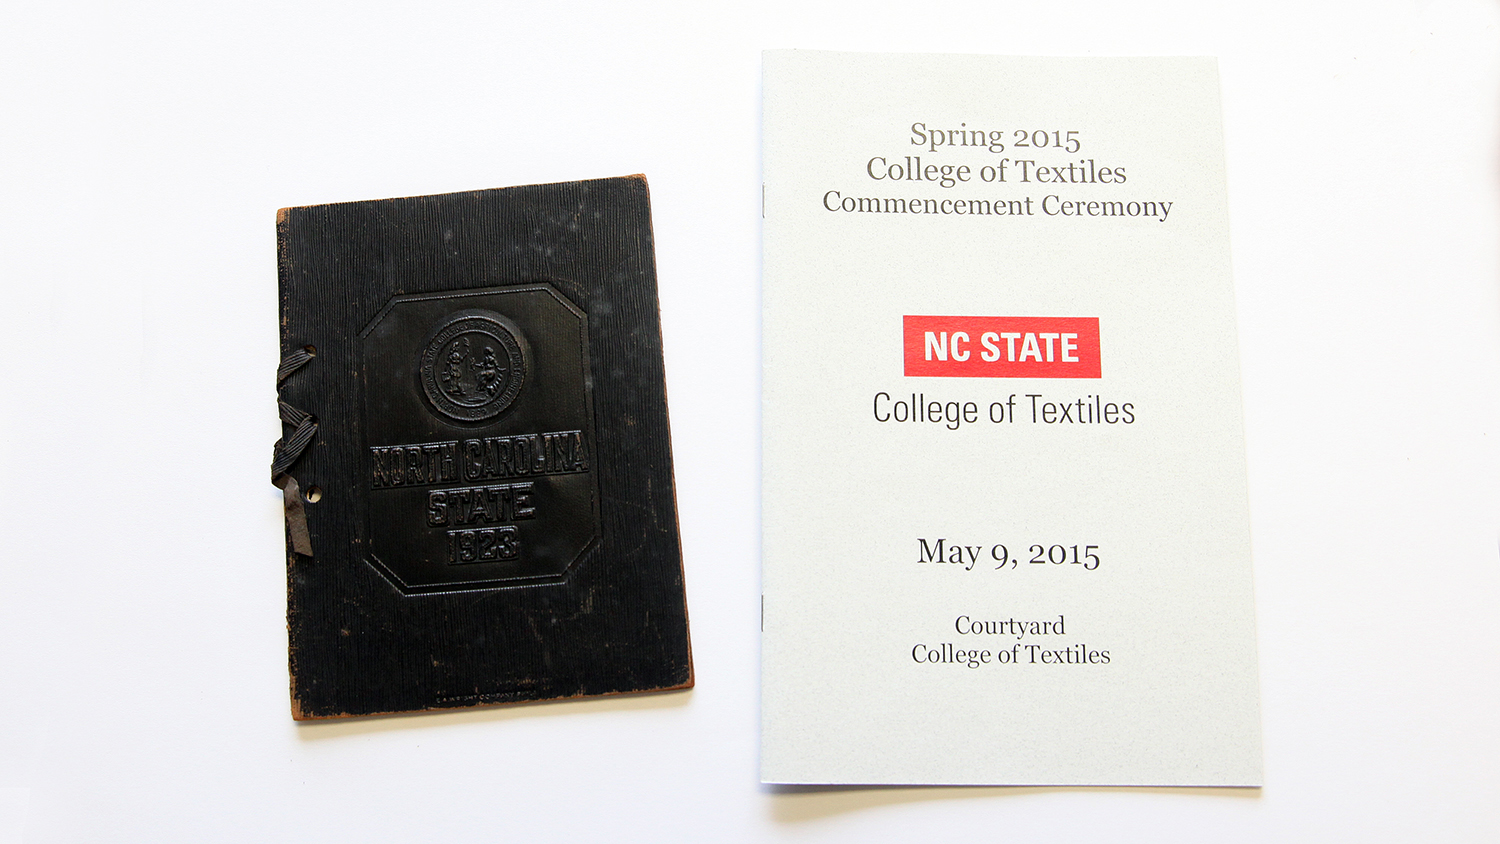 On the left is the 1923 graduation program belonging to Mason Page Thomas. To the right is the 2015 commencement program belonging to his great-granddaughter, Sara Thomas.